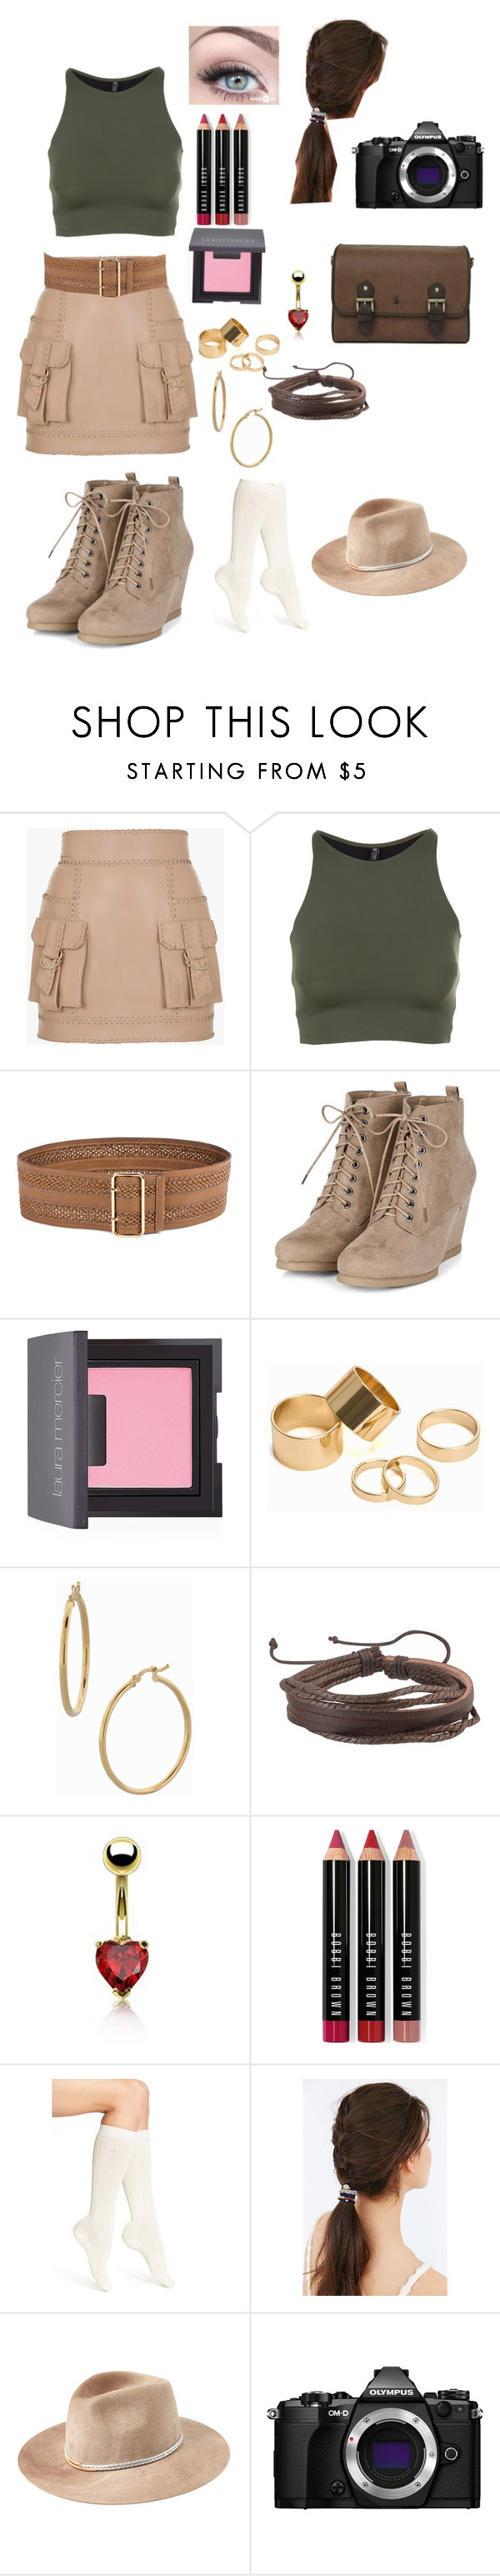 """Safari"" by goddessofbacon ❤ liked on Polyvore featuring Balmain, Onzie, Linea Pelle, Laura Mercier, Pieces, Bony Levy, Zodaca, Bling Jewelry, Bobbi Brown Cosmetics and Calvin Klein"